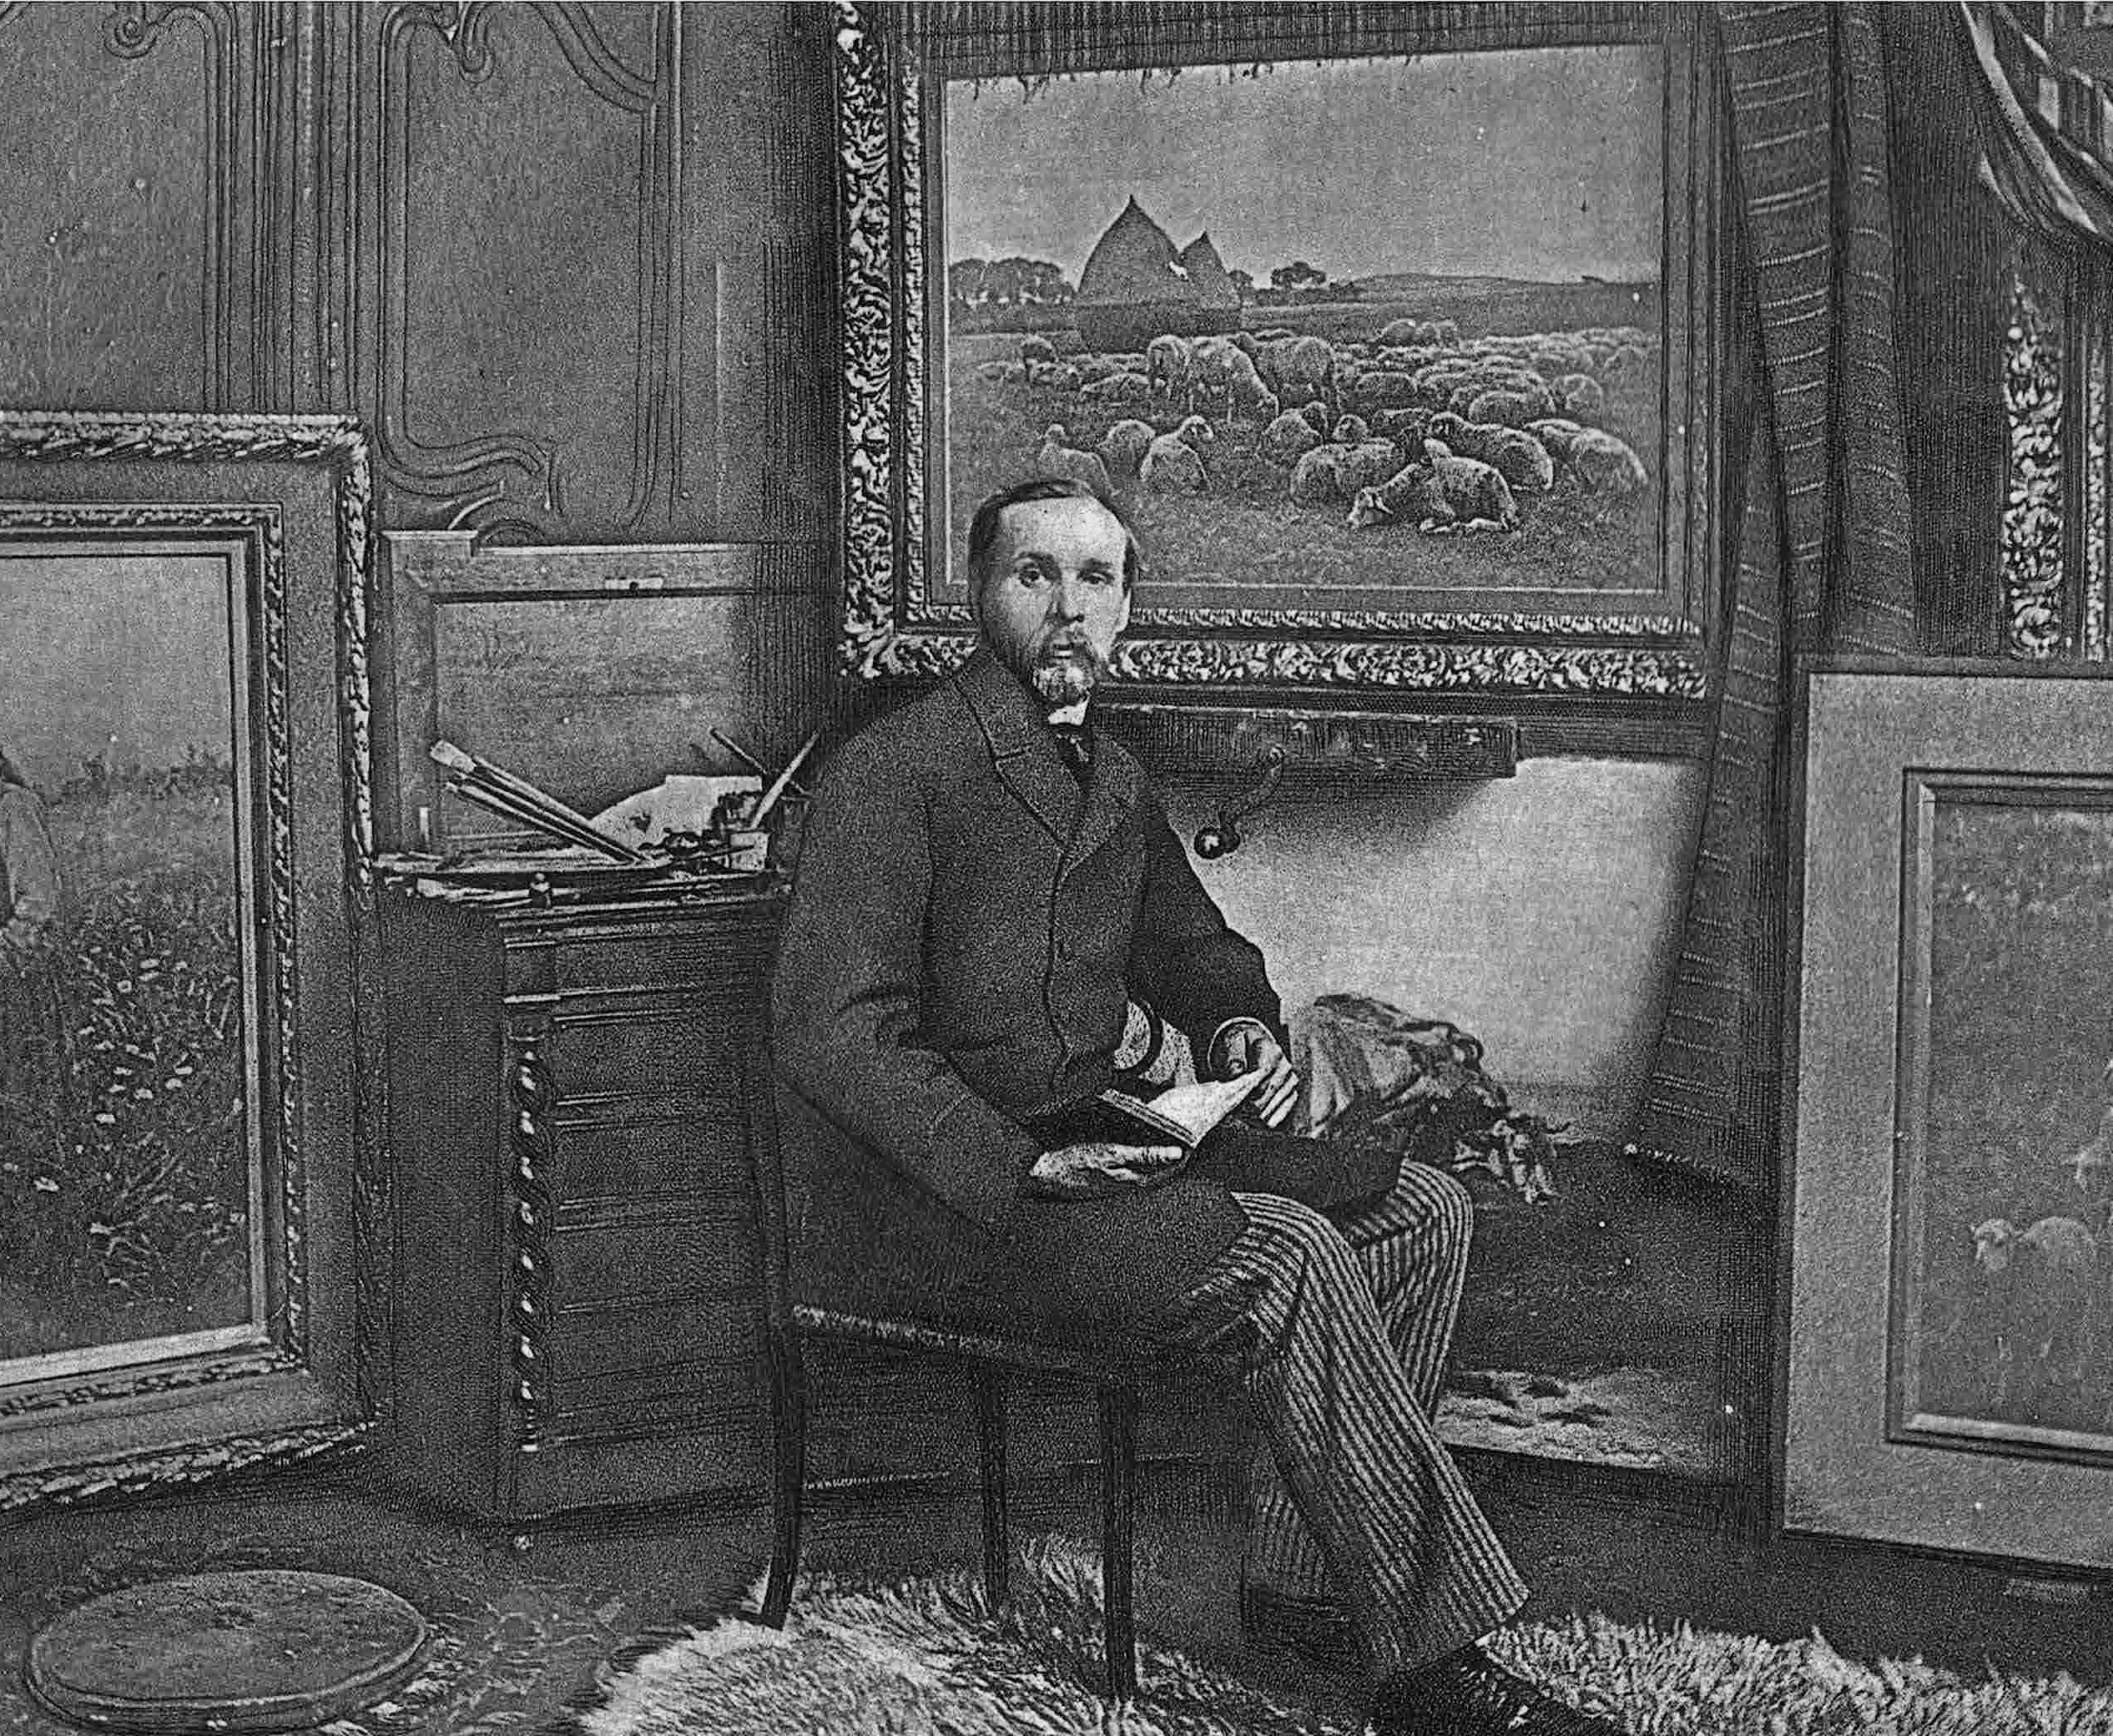 Gaylord Truesdell in his workshop - 1894